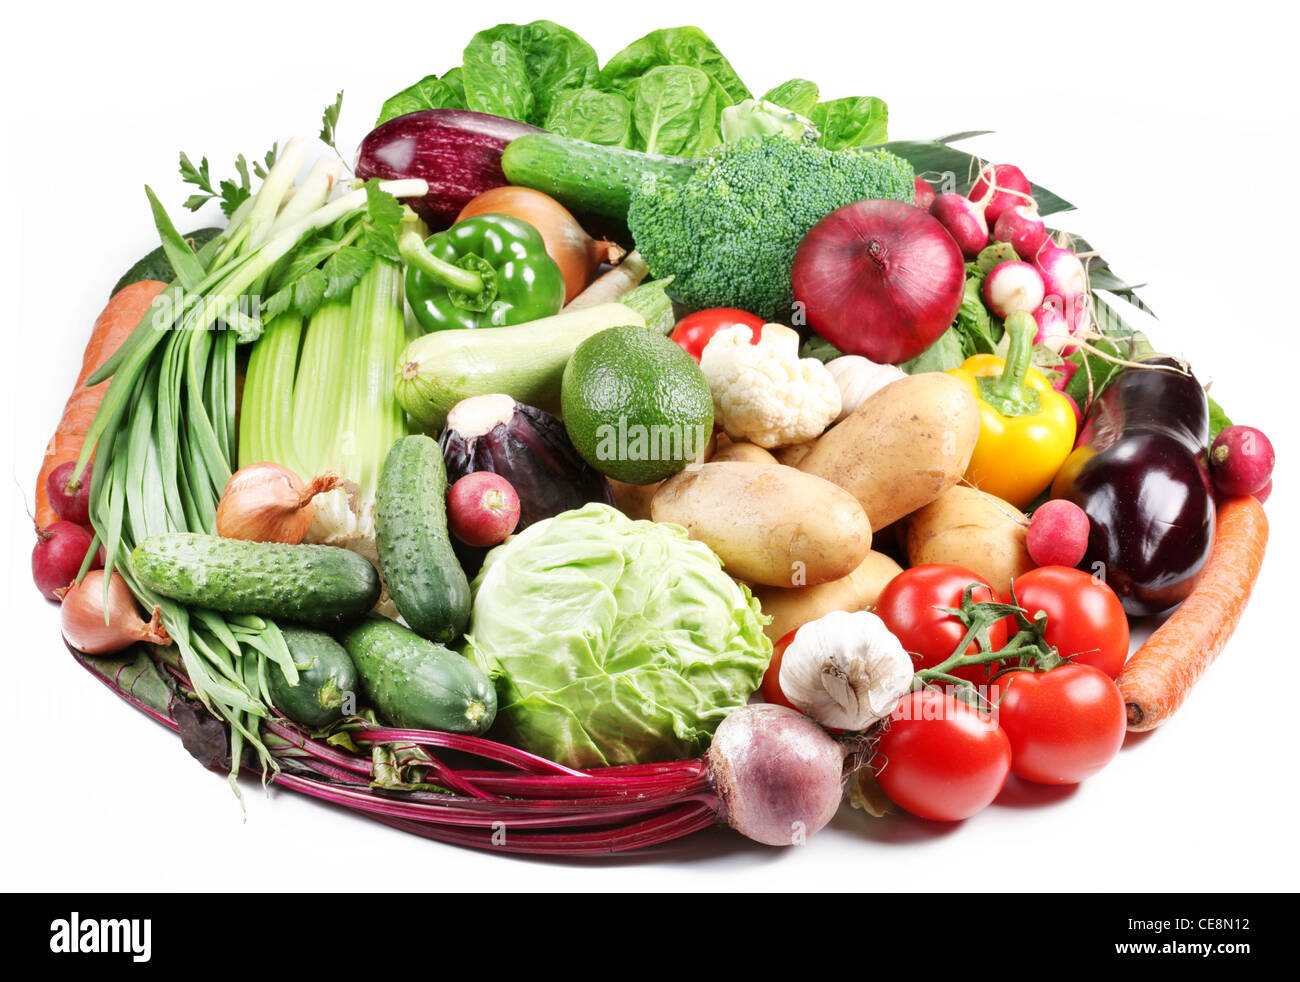 Variety of vegetables are laid out in a circle on a white background. - Stock Image